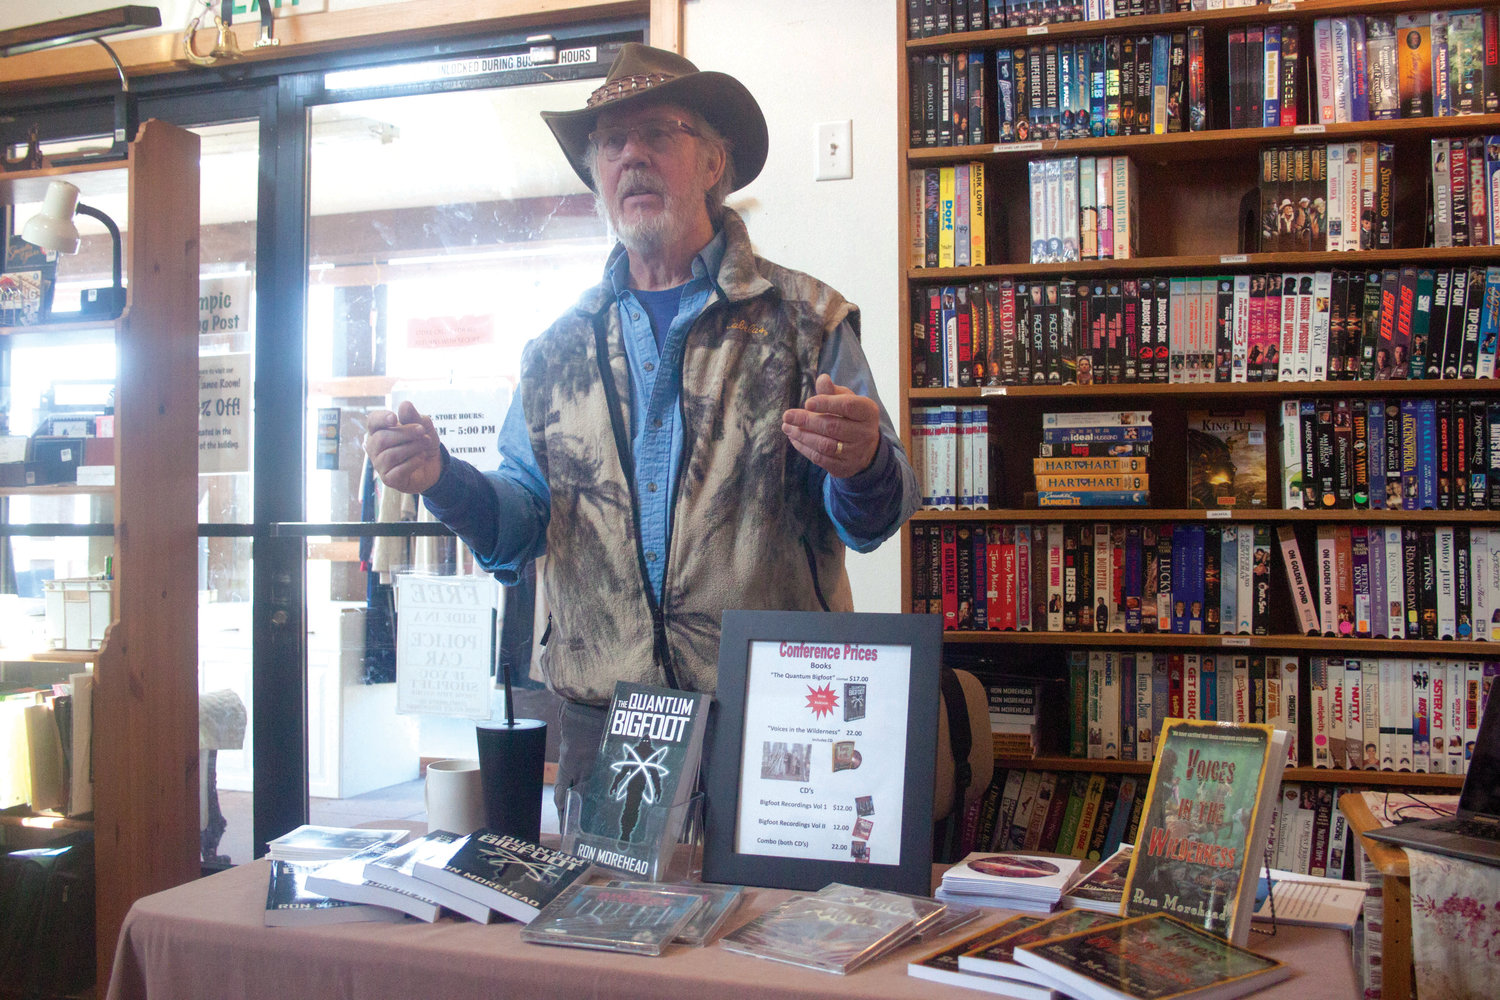 Sequim's Ron Morehead recounts his encounters with Sasquatch to an audience at the Olympic Trading Post in Chimacum March 2, occasionally playing recordings of what he believes to be Bigfoot calls.